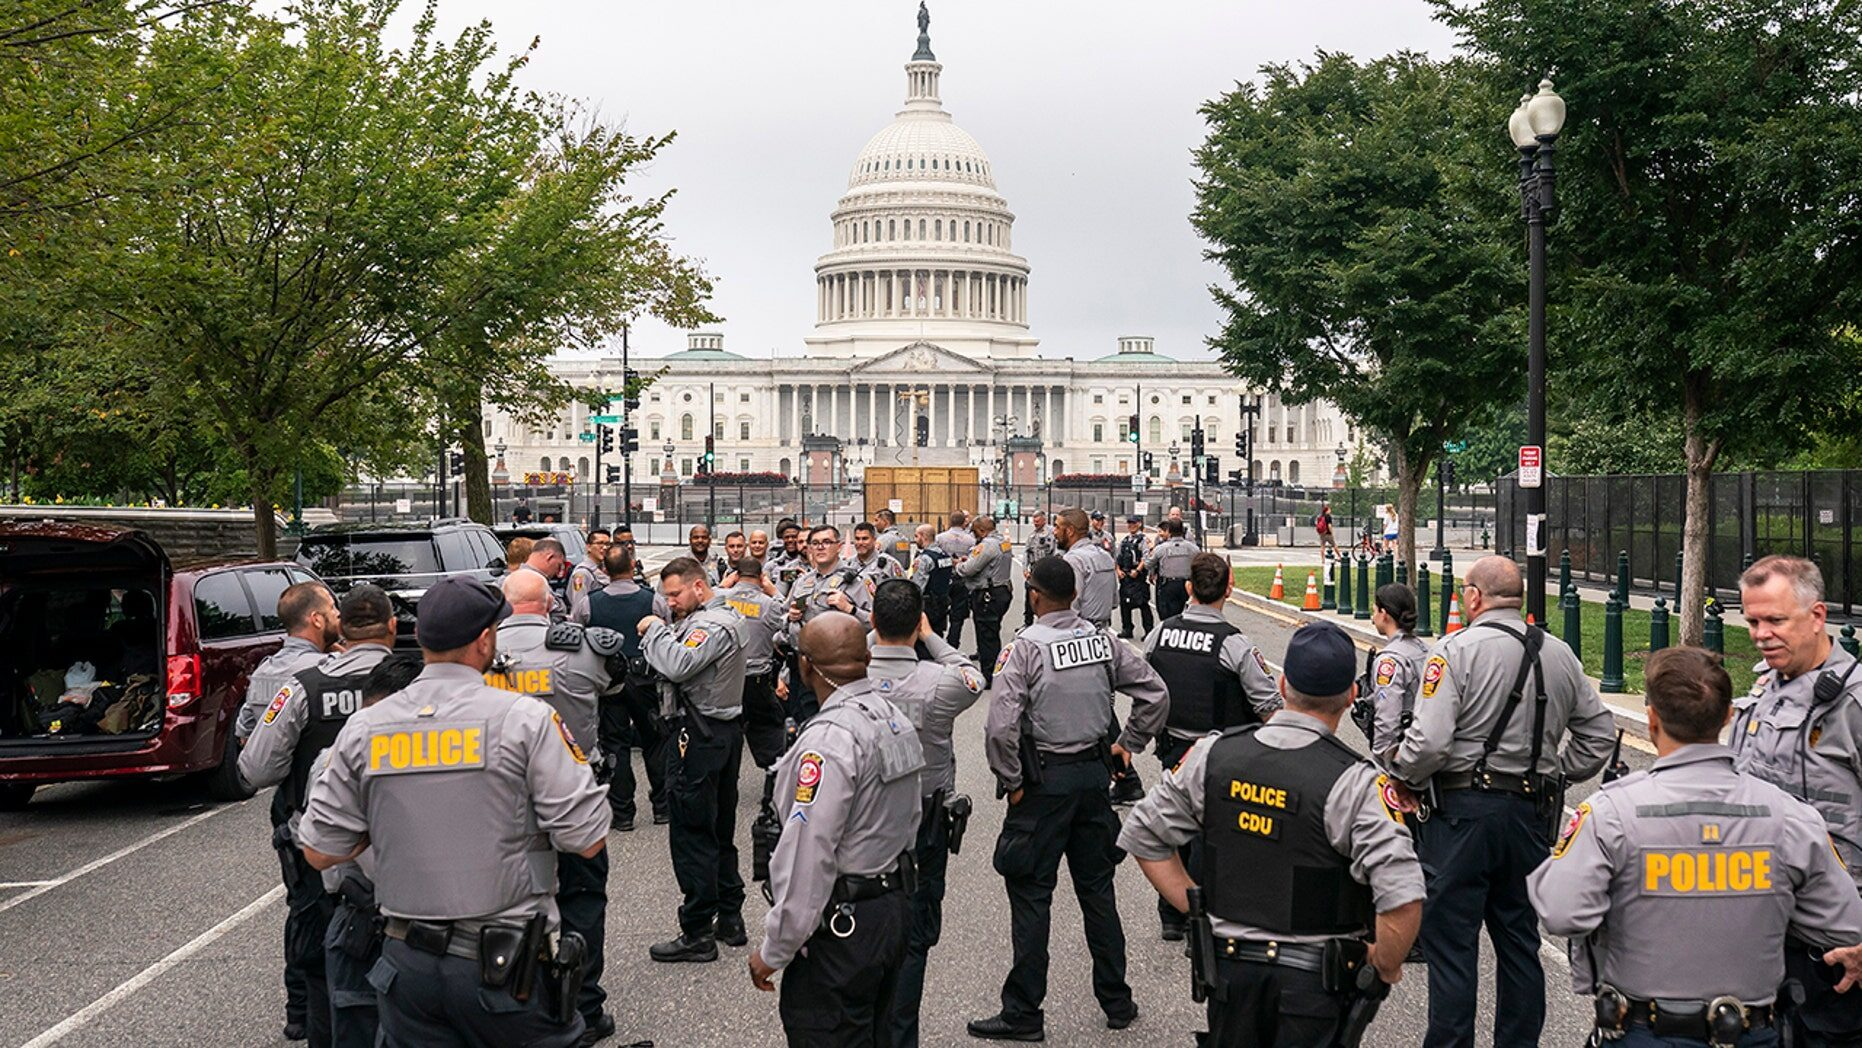 Police and media OUTNUMBER 'Justice for J6' protesters at Capitol Hill rally -- Society's Child -- Sott.net